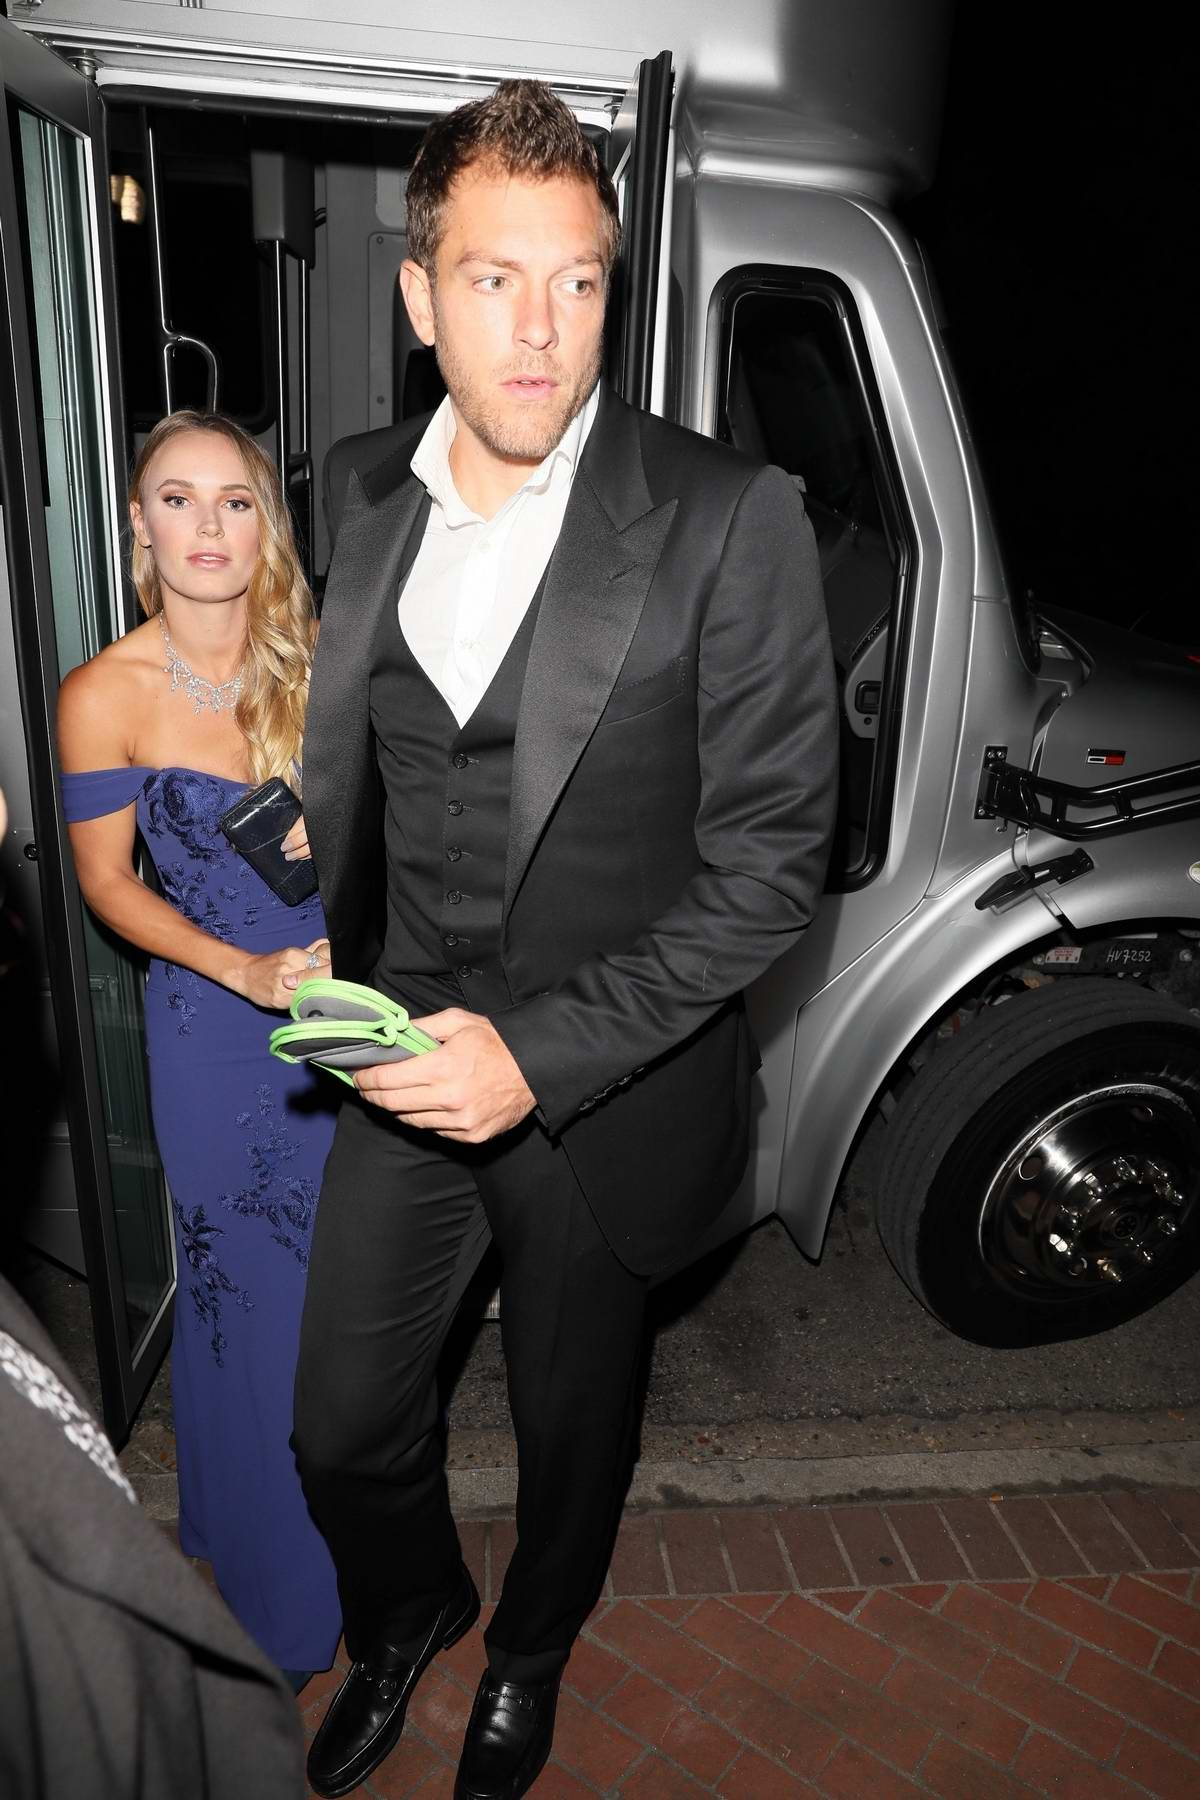 Caroline Wozniacki and David Lee arriving to the Serena Williams and Alexis Ohanian wedding in New Orleans